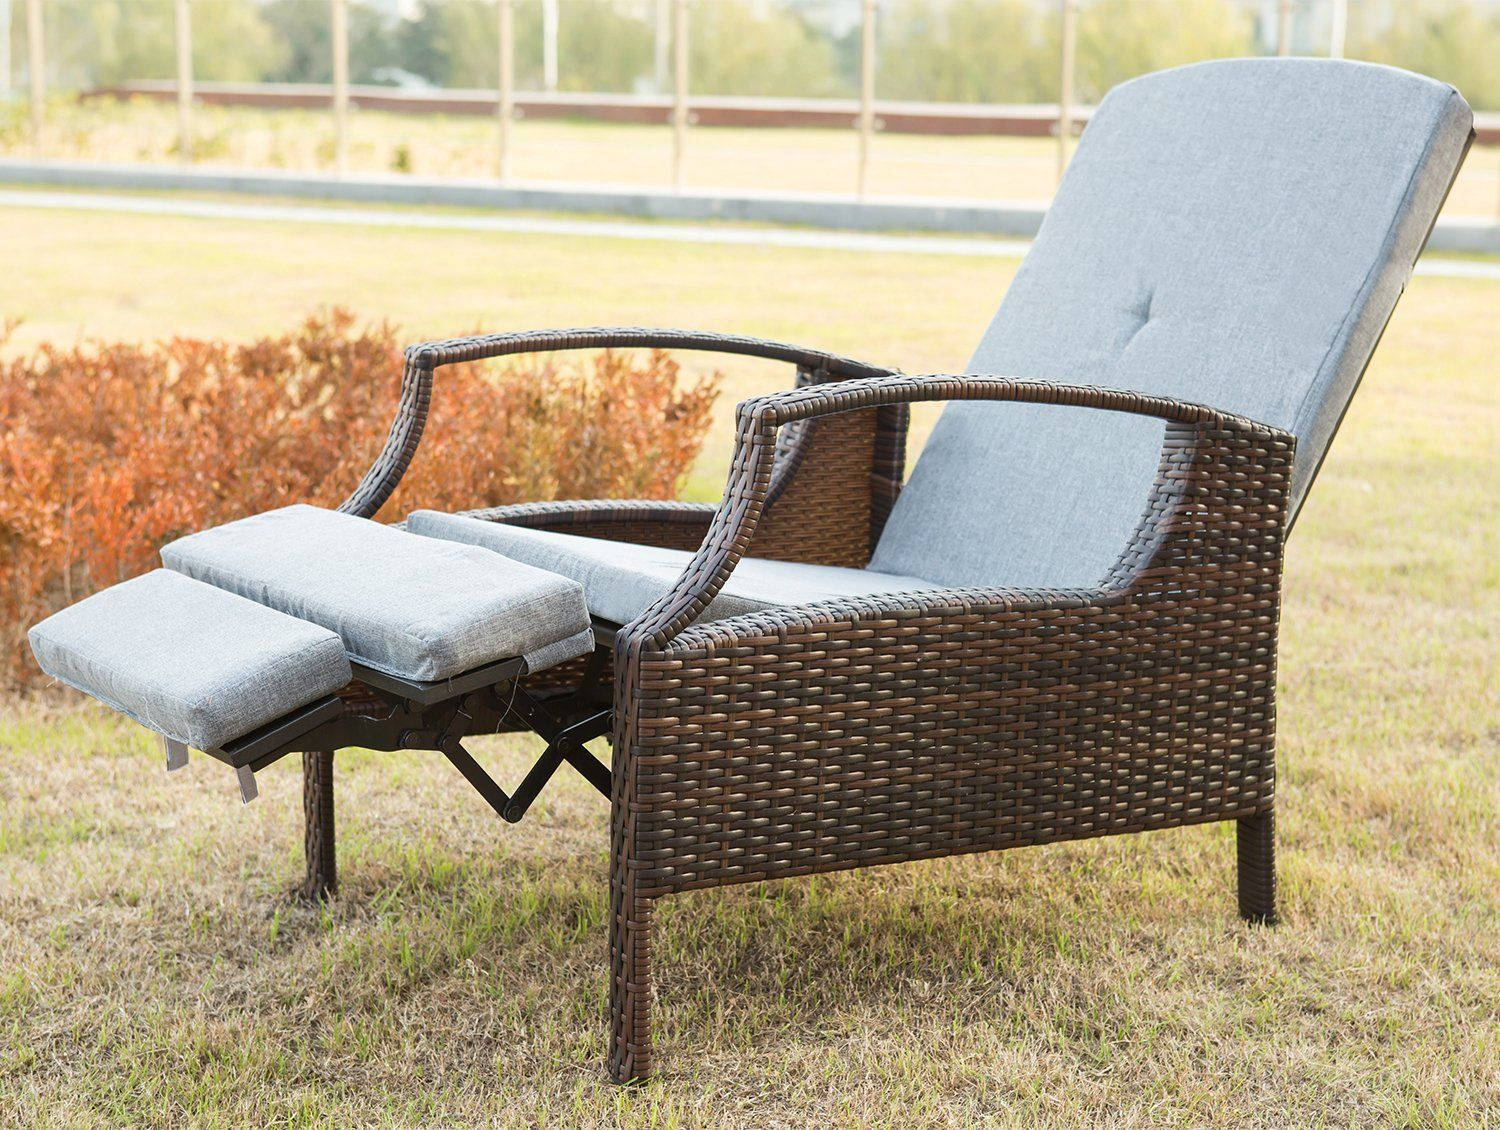 Captivating Merax Outdoor Wicker Patio Adjustable Recliner Chair Lounge With Cushions  (Grey). Smooth Reclining